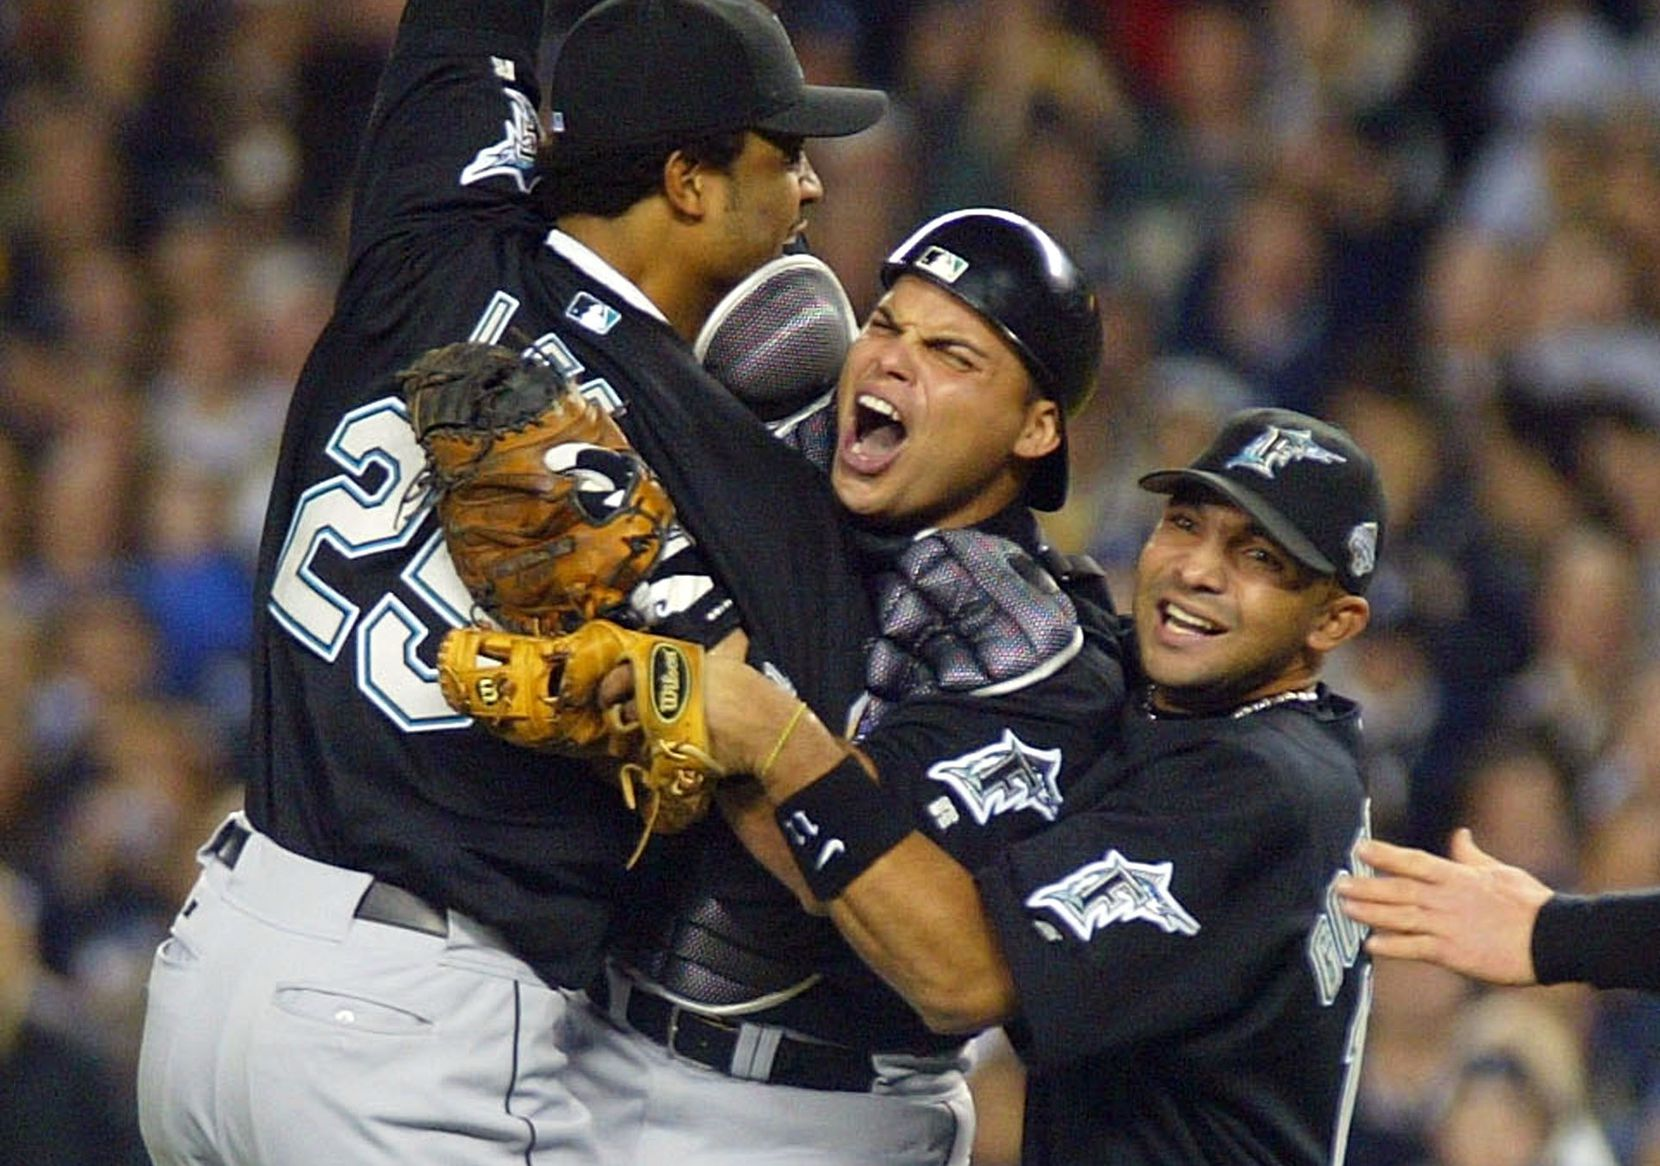 BRONX, NY - OCTOBER 25: Ivan Rodriguez #7 of the Florida Marlins celebrates with teammates Derrek Lee #25 and Alex Gonzalez #11 after defeating the New York Yankees 2-0 in game six of the Major League Baseball World Series on October 25, 2003 at Yankee Stadium in the Bronx, New York. (Photo by Al Bello/Getty Images)